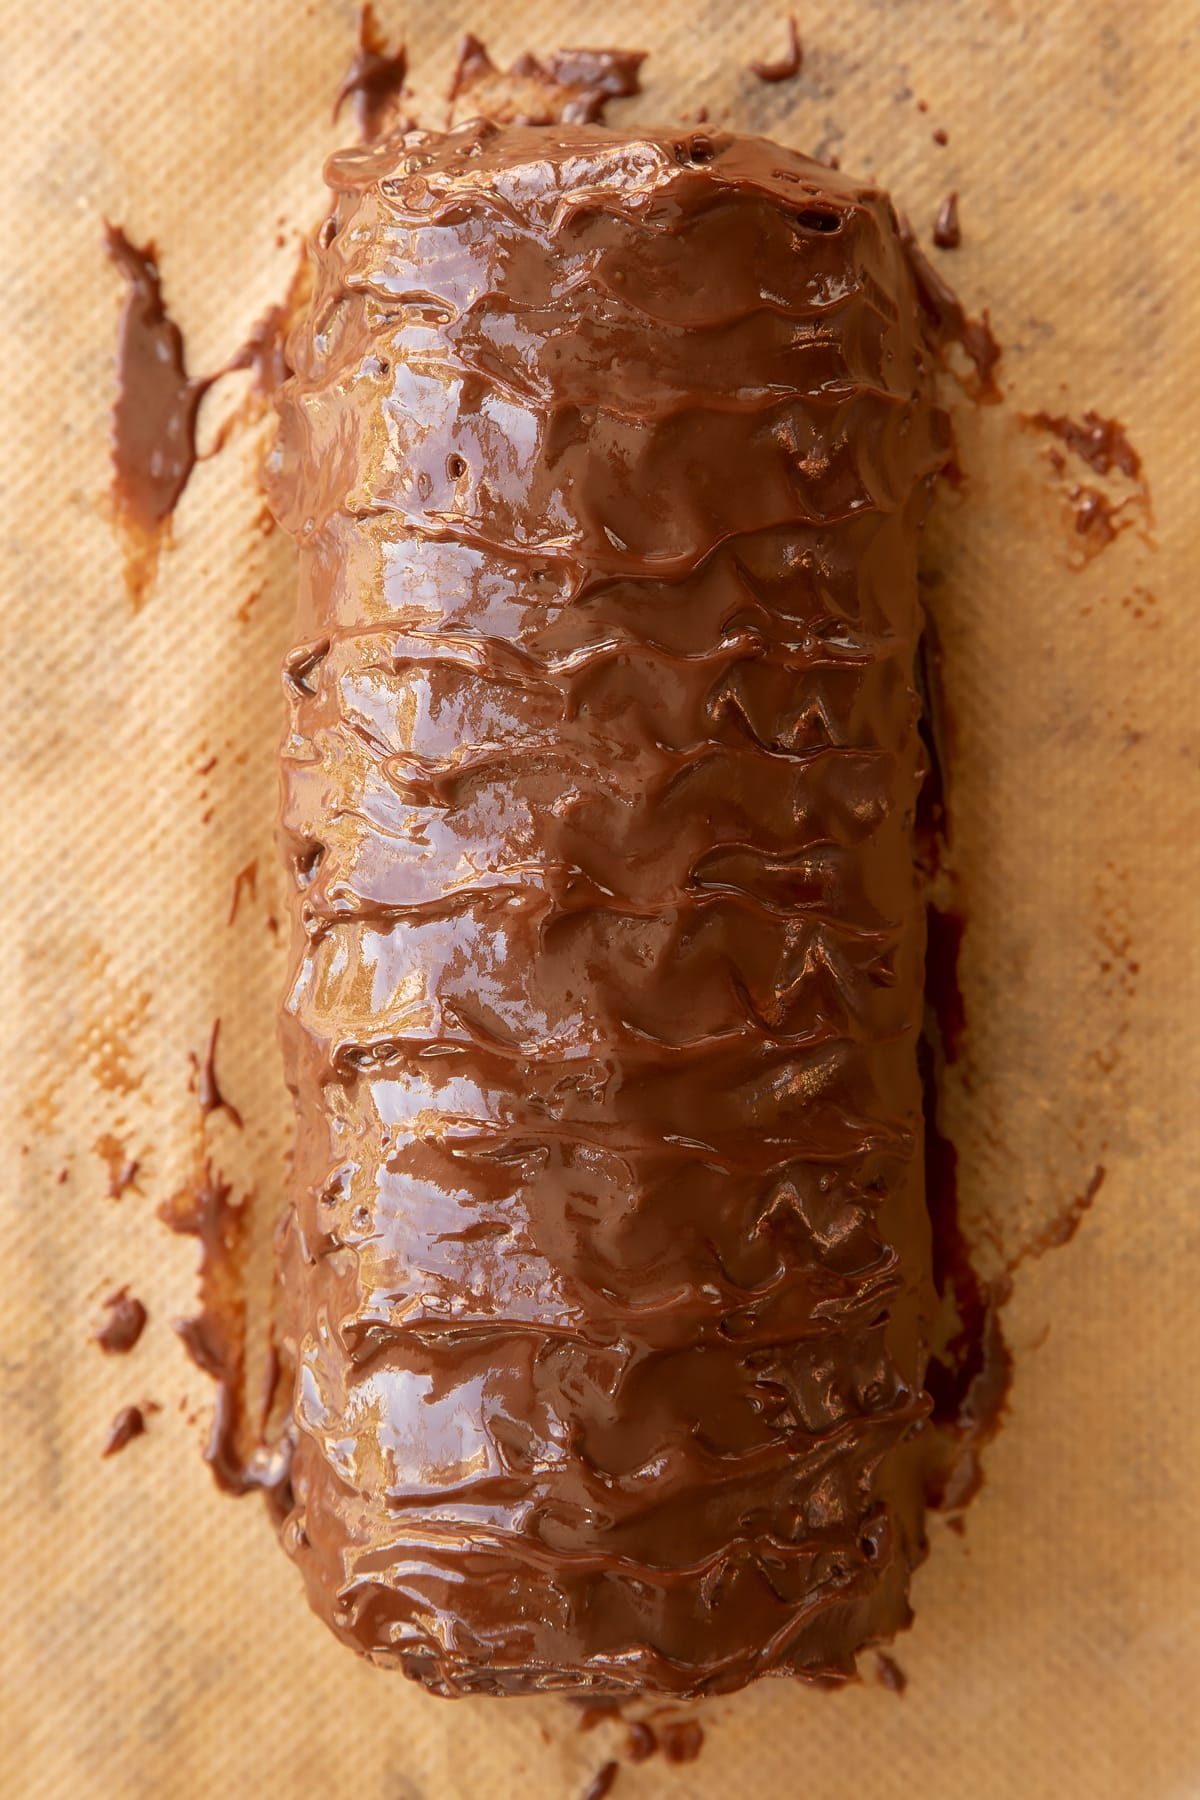 Chocolate Swiss roll covered with chocolate ganache on baking paper.